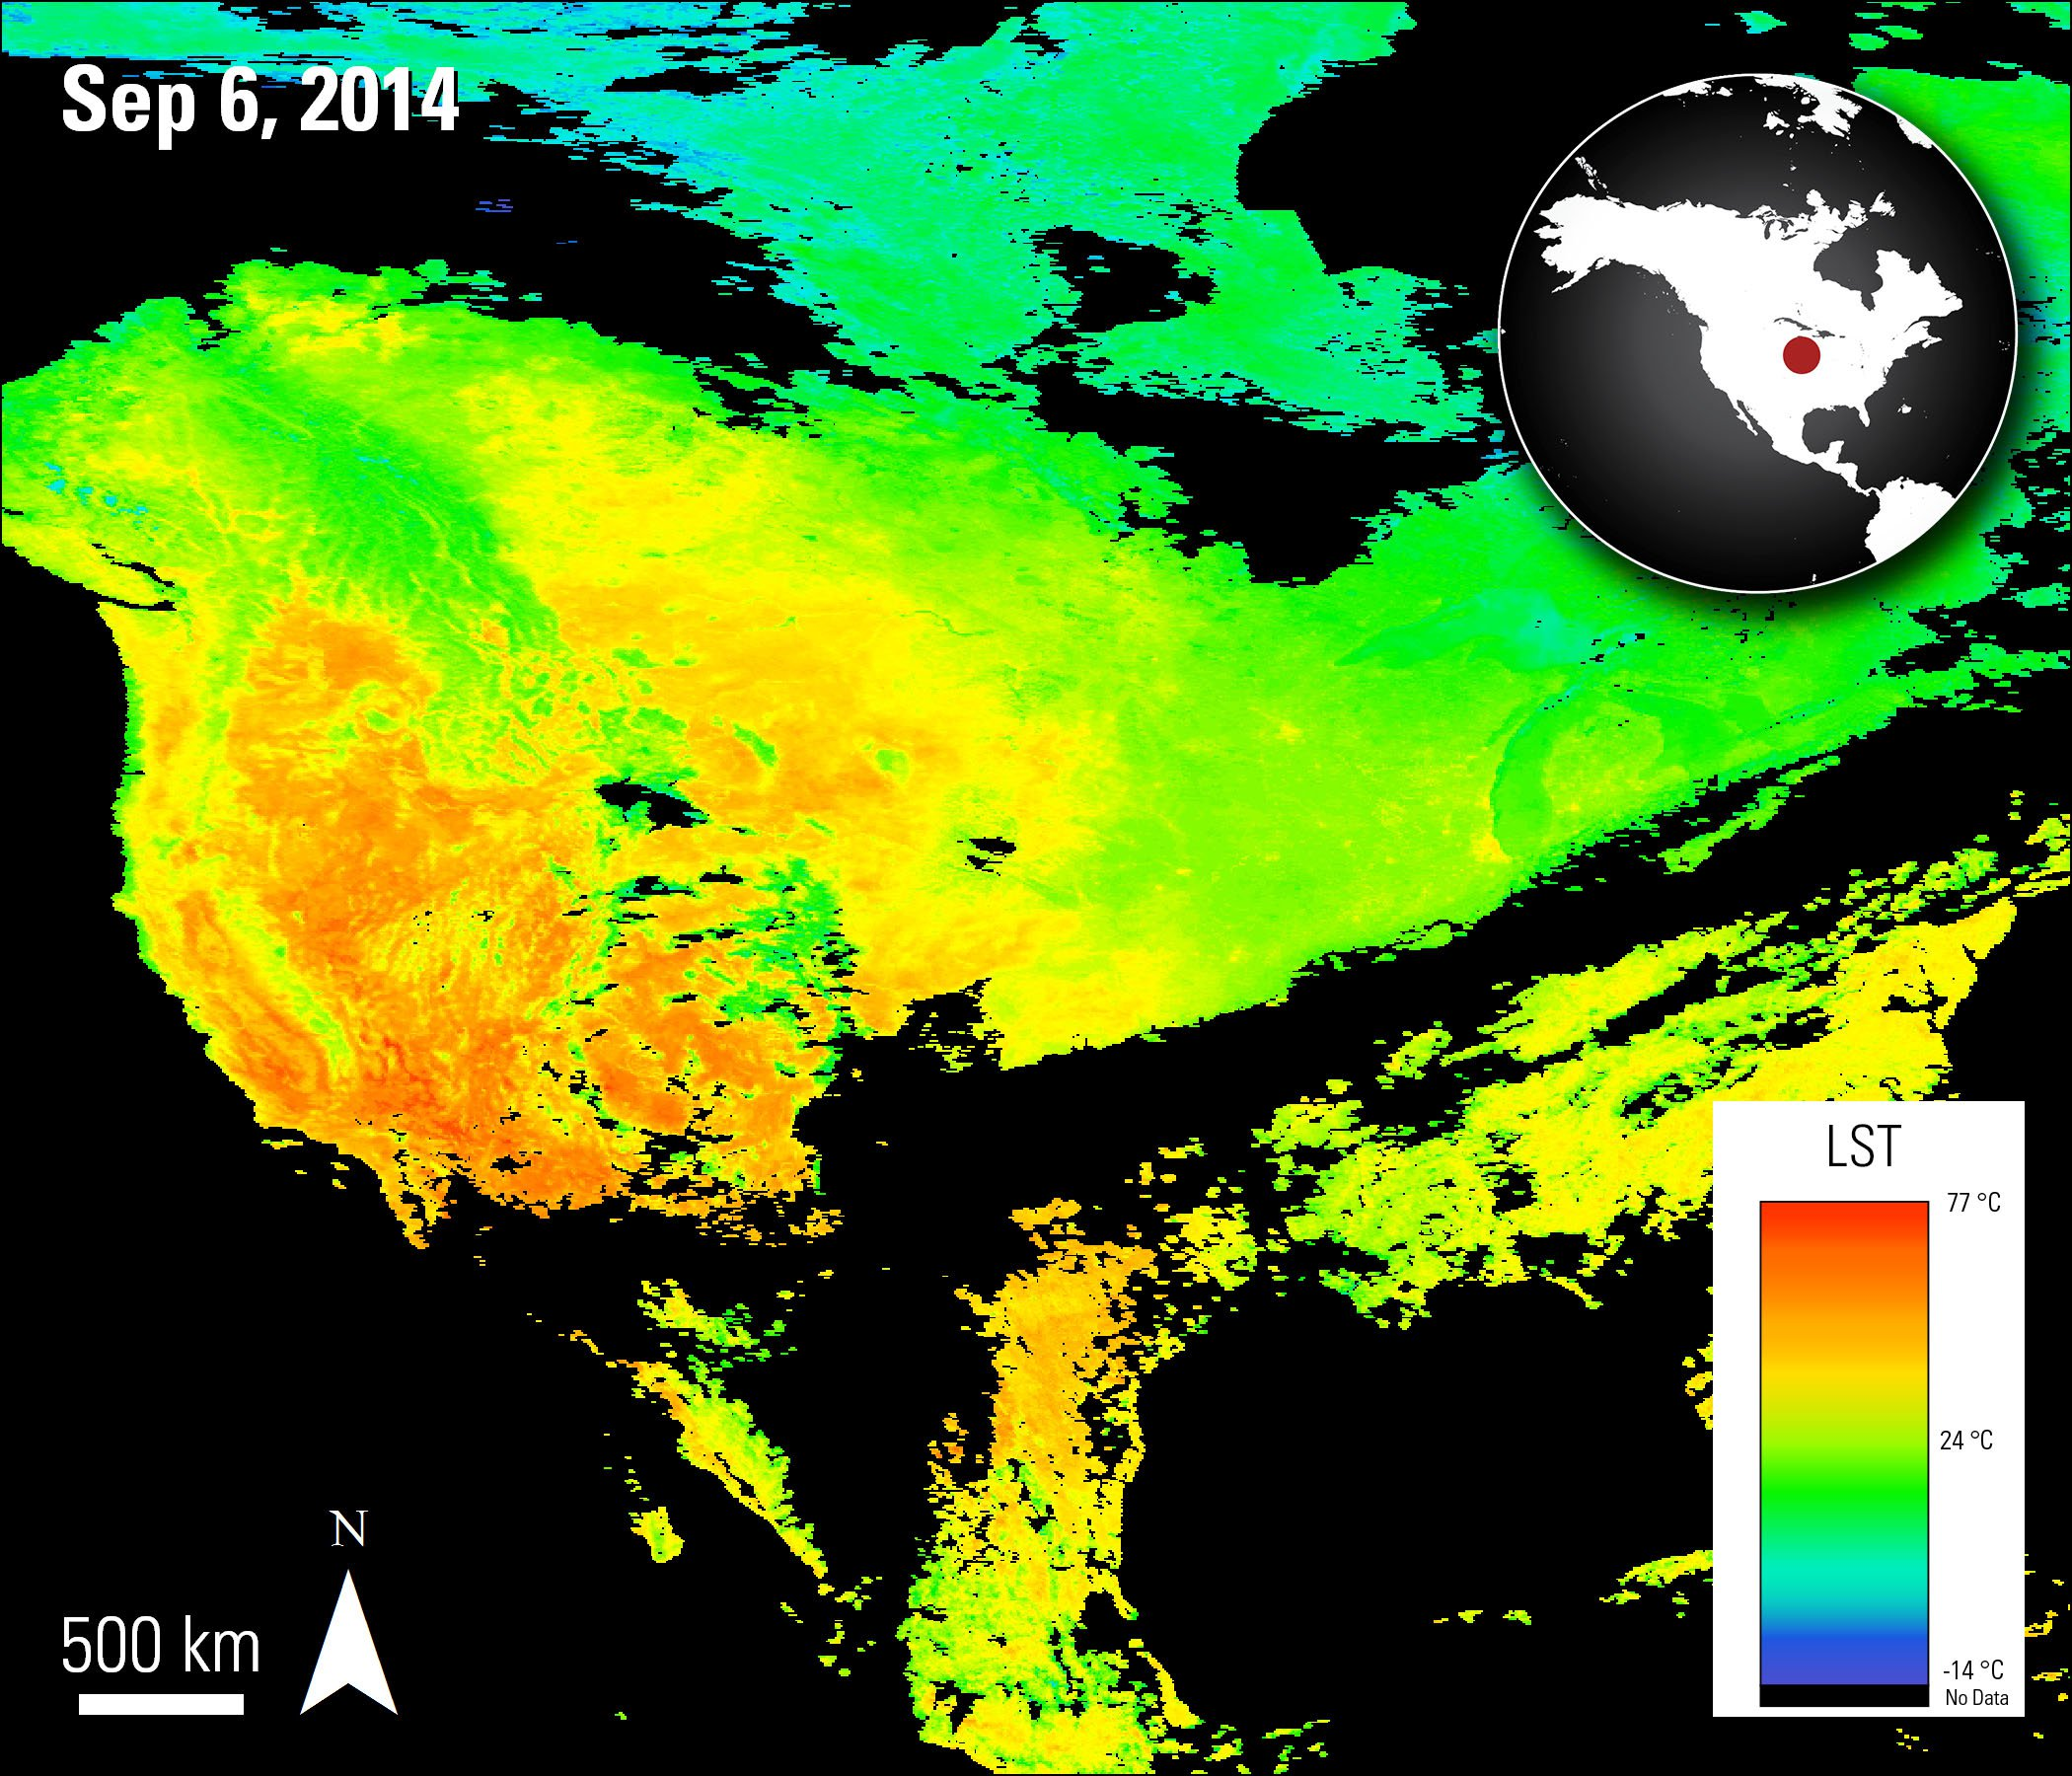 Aqua MODIS LST data over CONUS, acquired September 6, 2014.